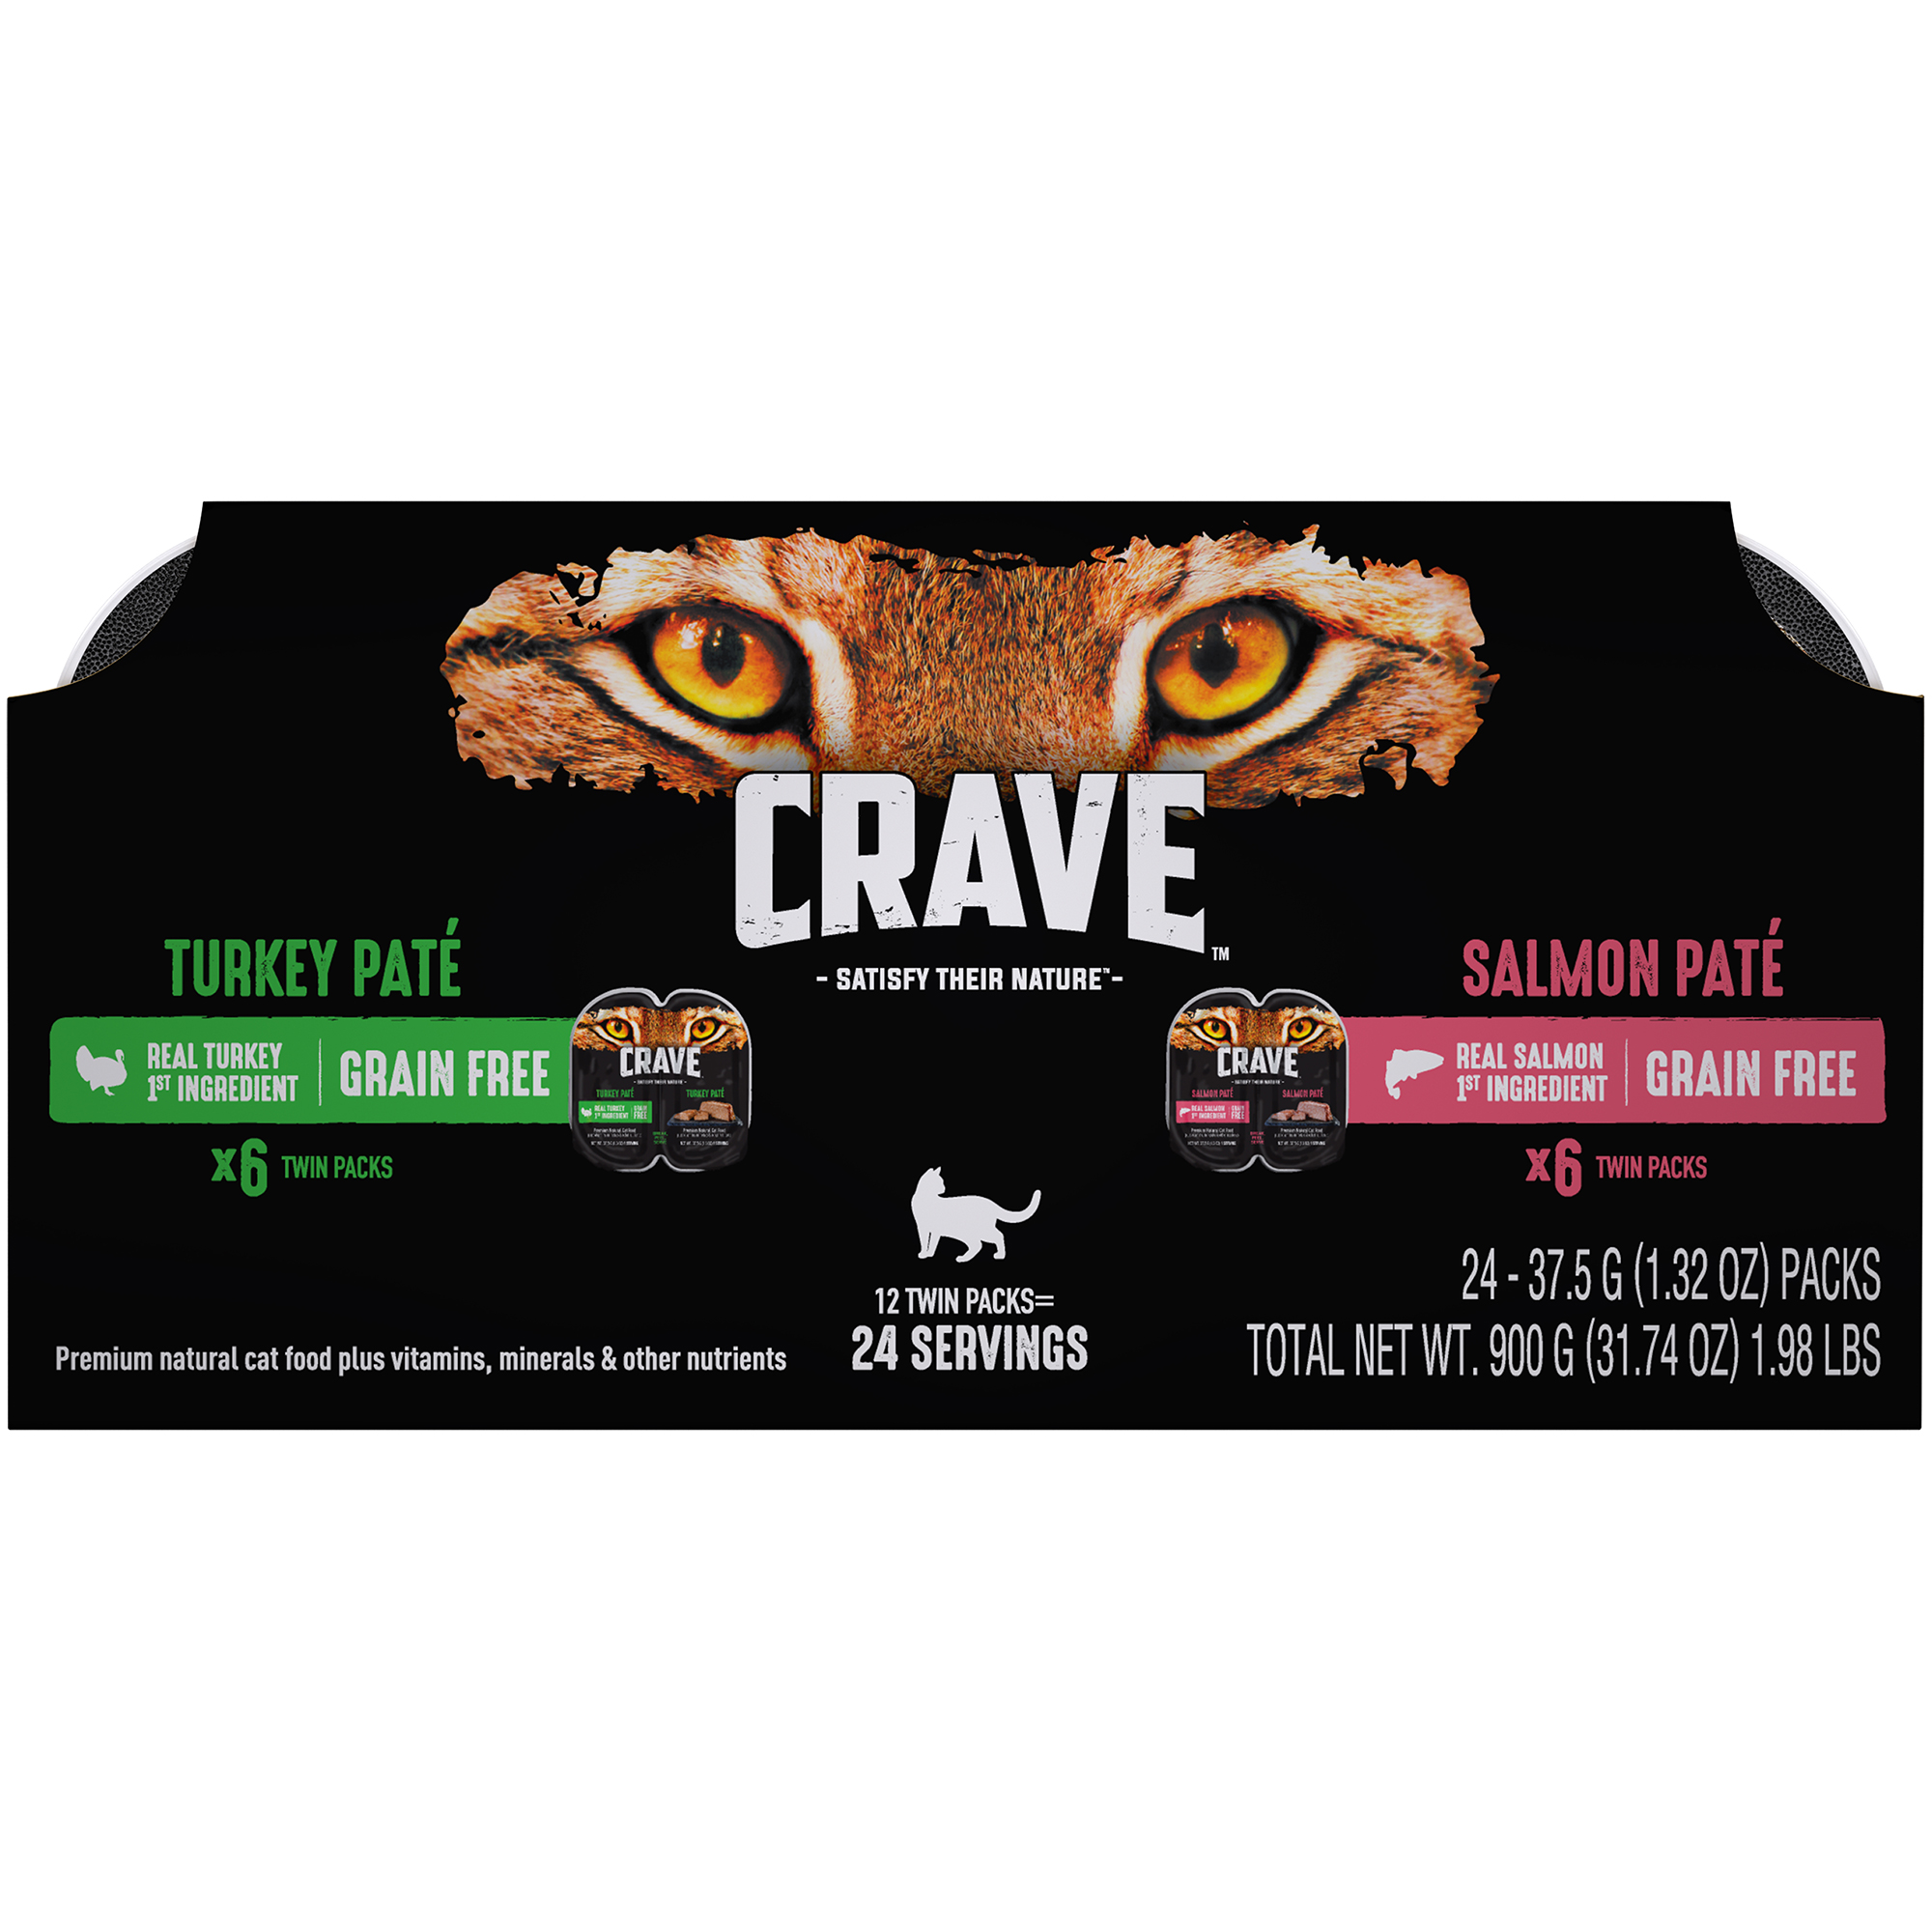 CRAVE Grain Free Adult High Protein Wet Cat Food Pate Turkey & Salmon Variety Pack, (12) 2.6 oz. Twin-Pack Trays